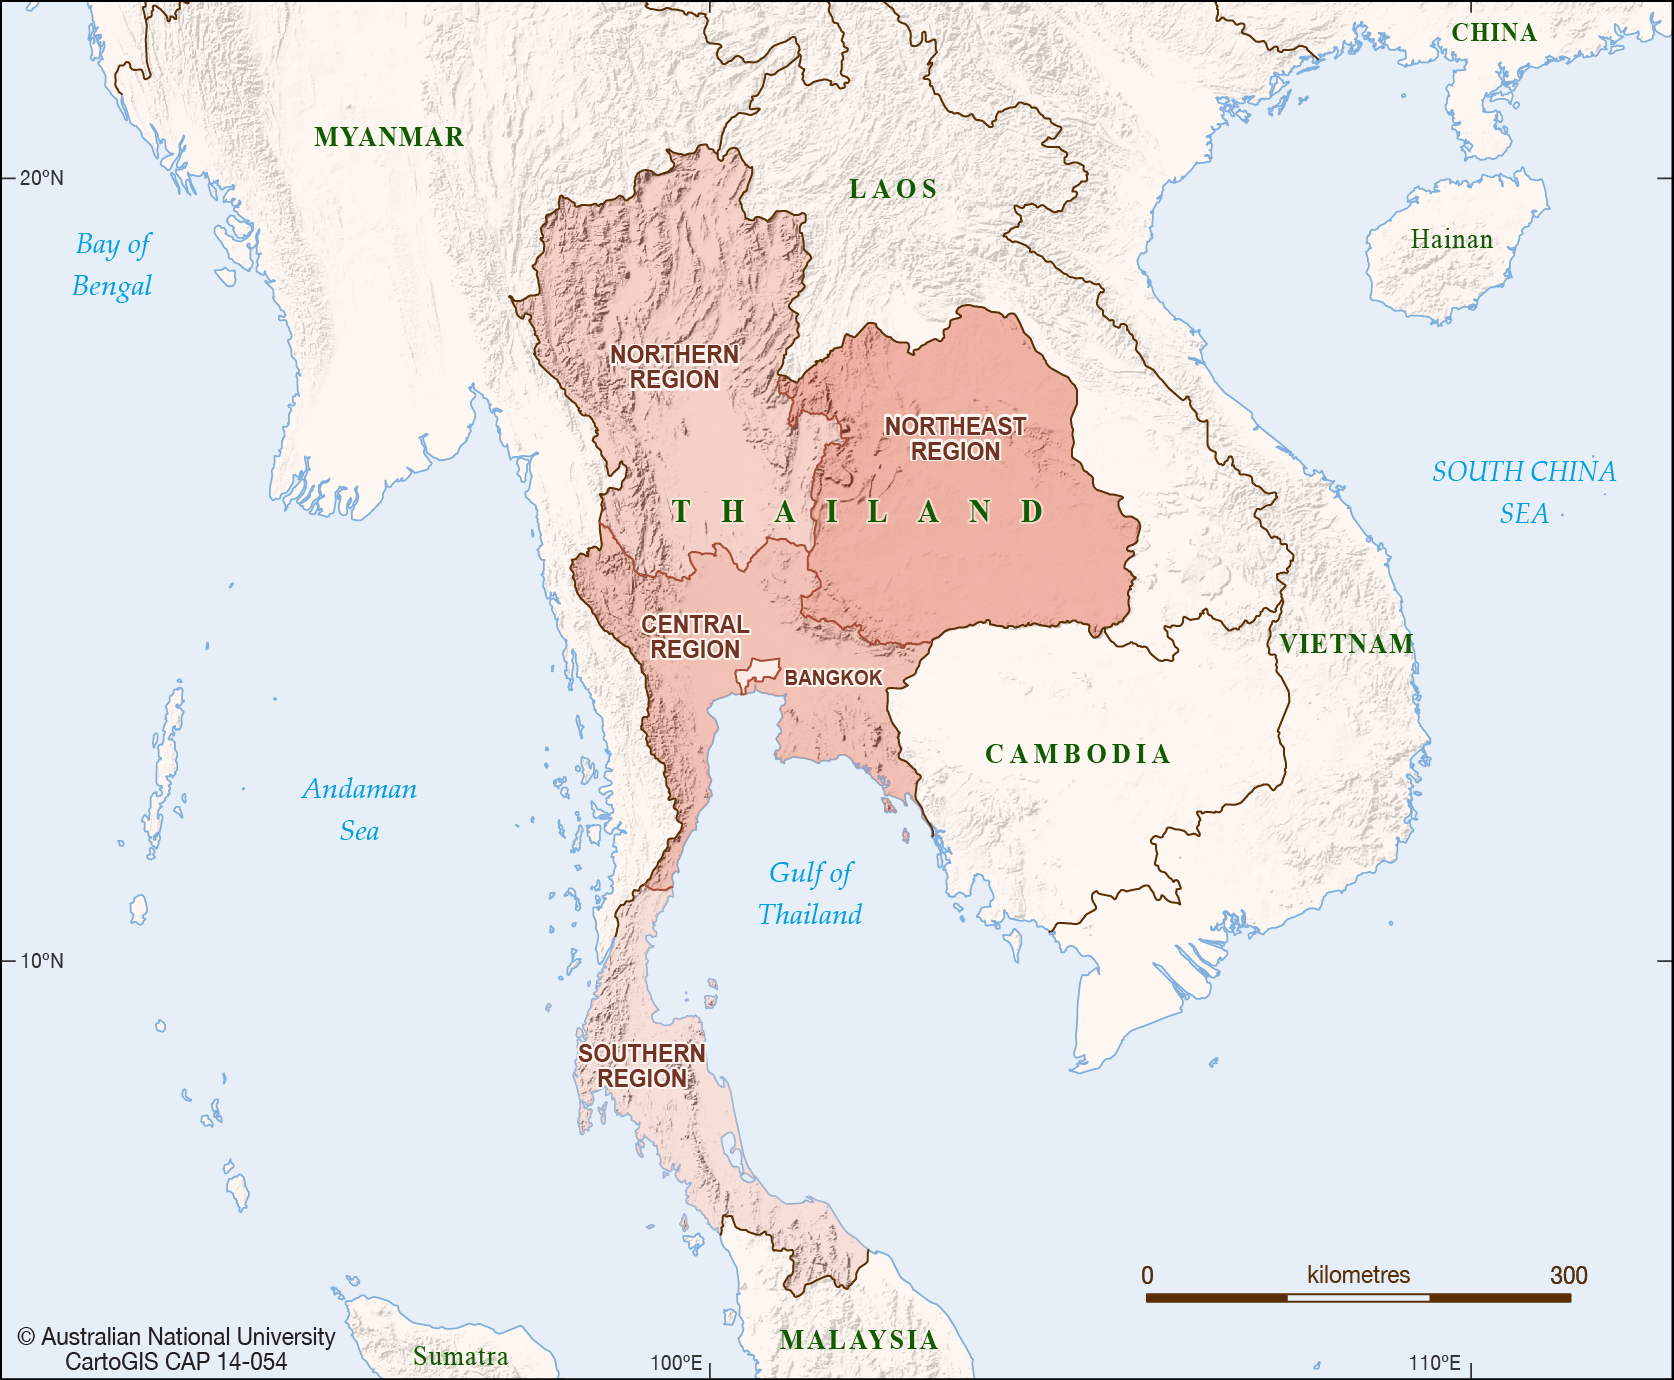 Thailand Regions  CartoGIS Services Maps Online  ANU